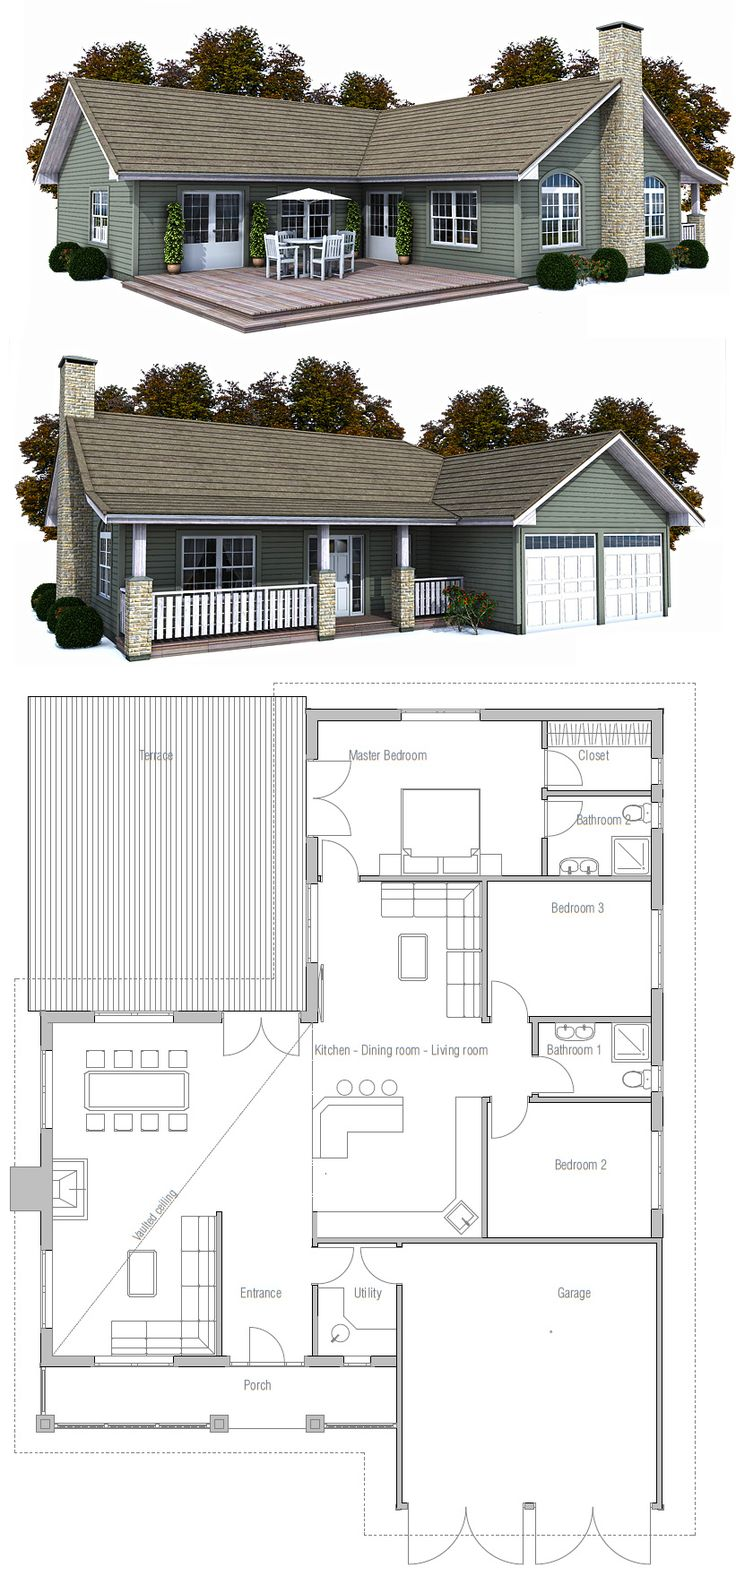 Awesome 17 Best Ideas About Small House Plans On Pinterest Cabin Plans Largest Home Design Picture Inspirations Pitcheantrous